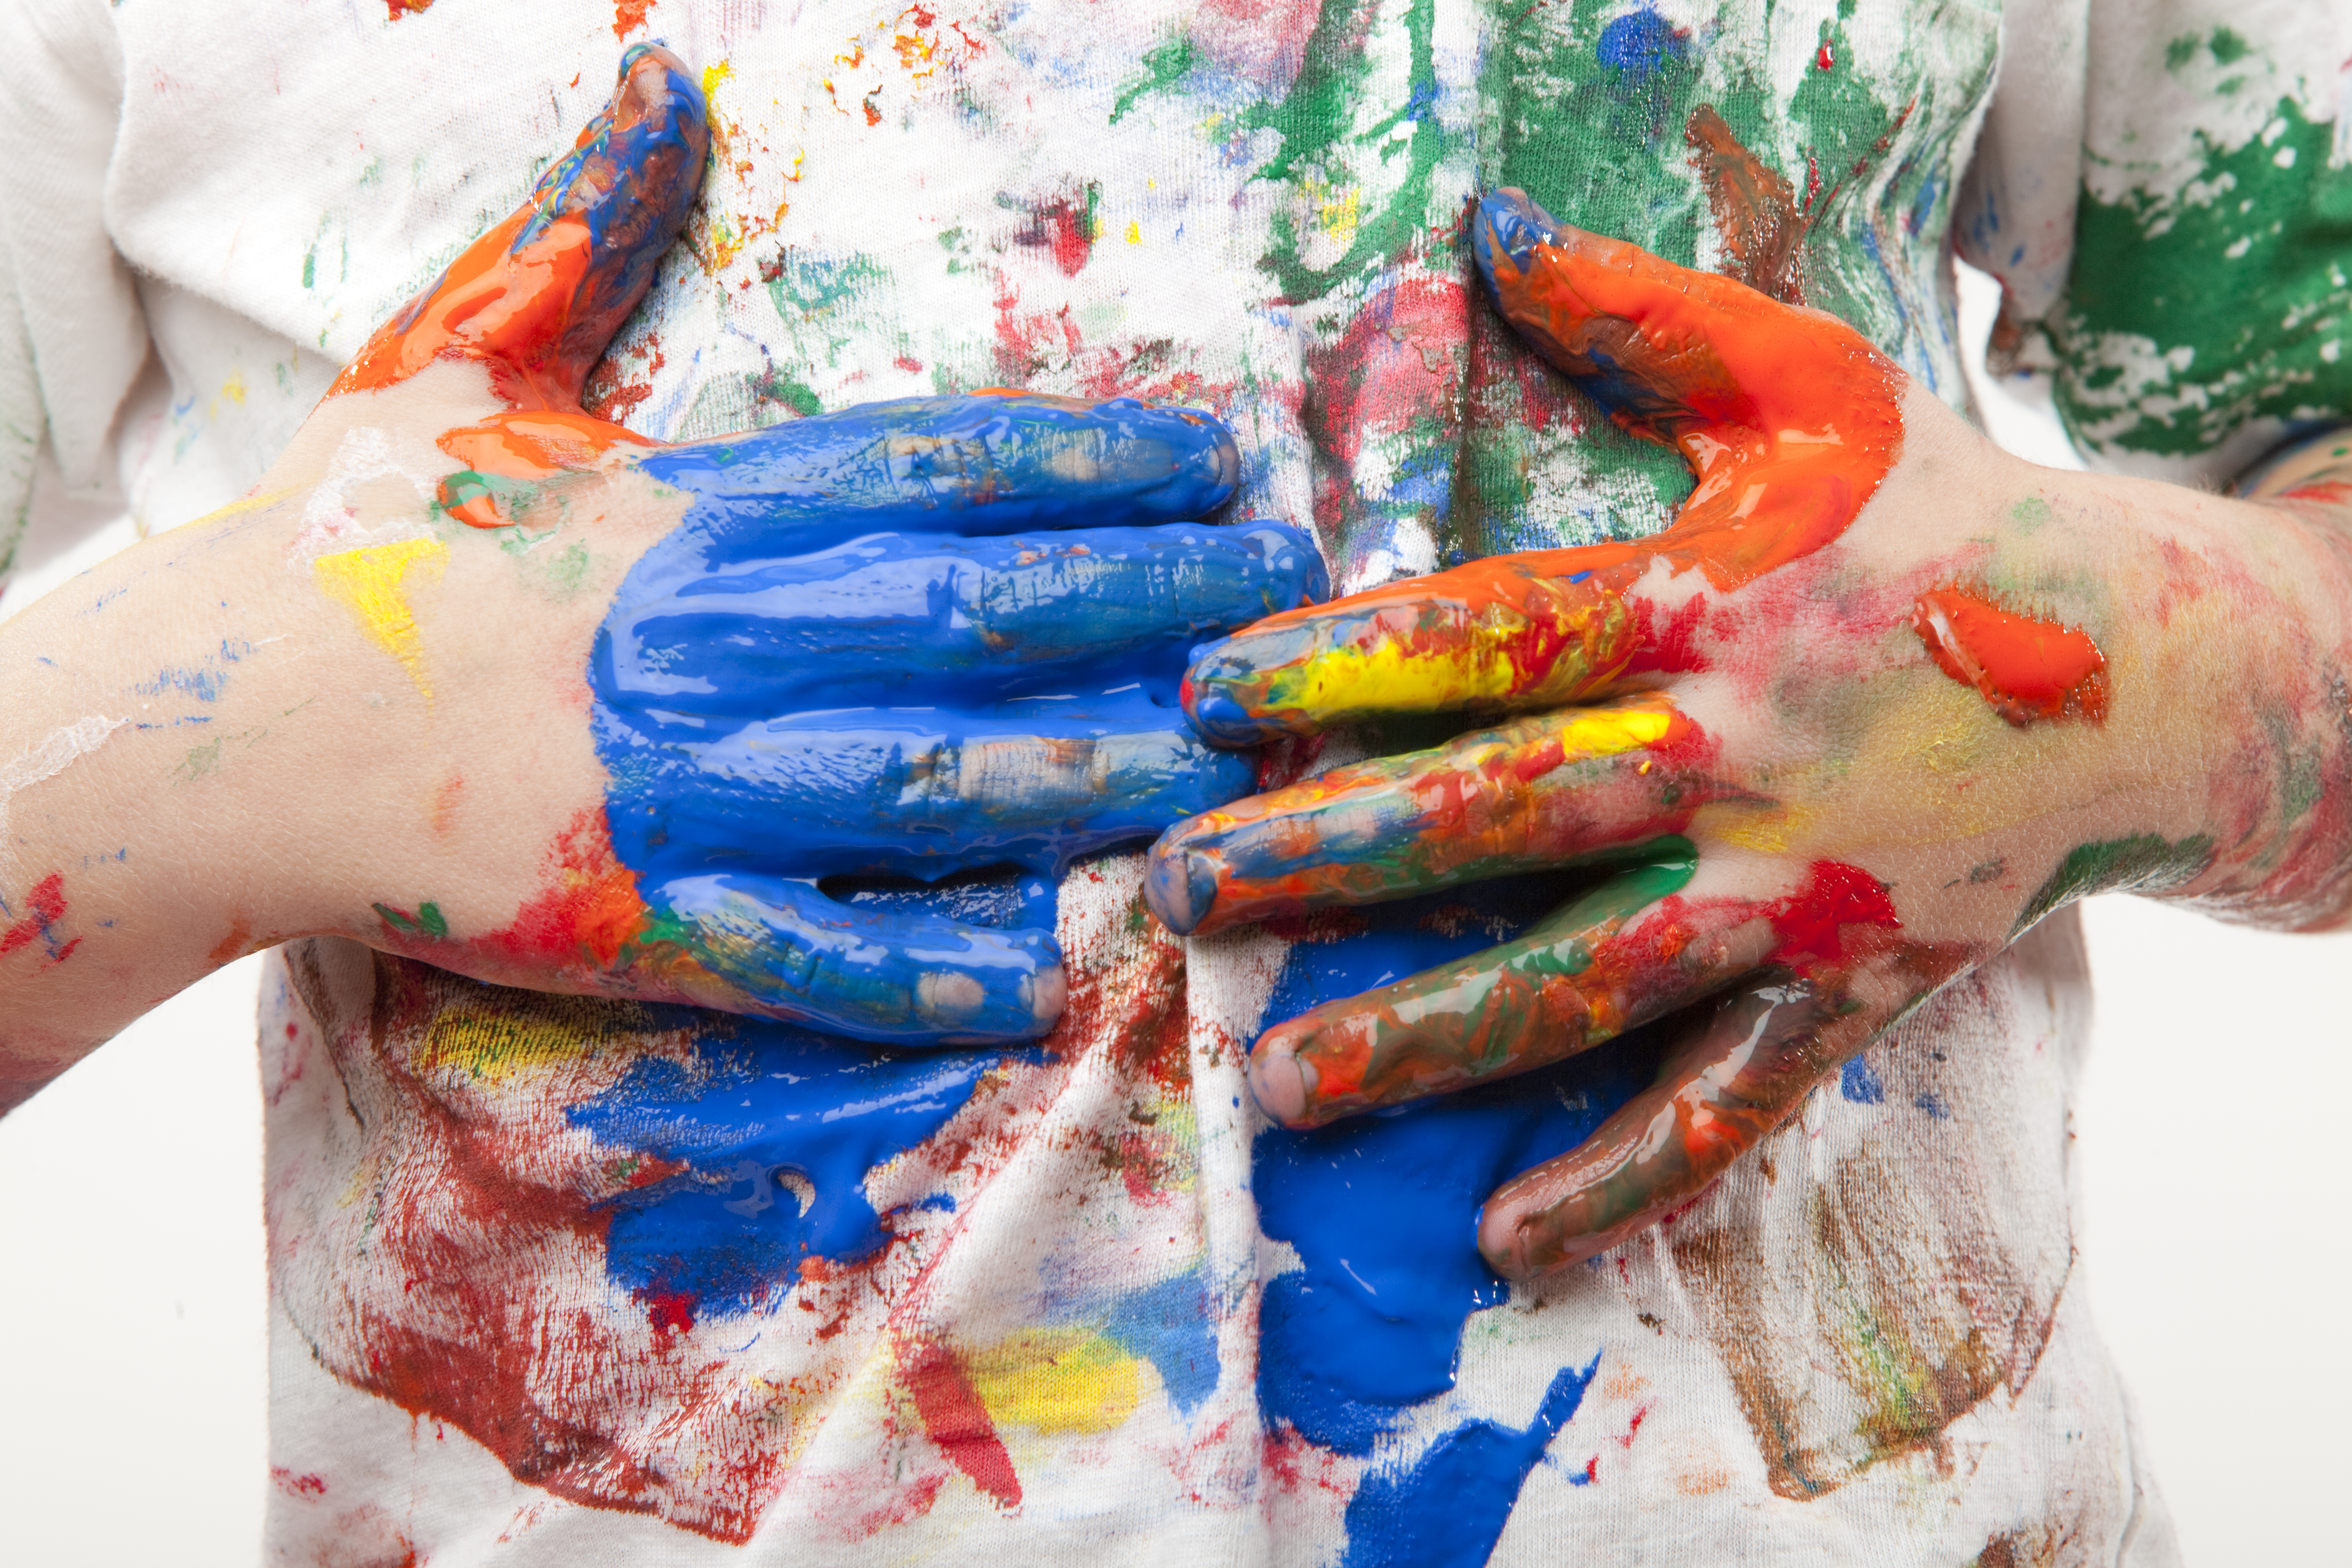 Paint, crayon, slime and other kid messes — and how to clean